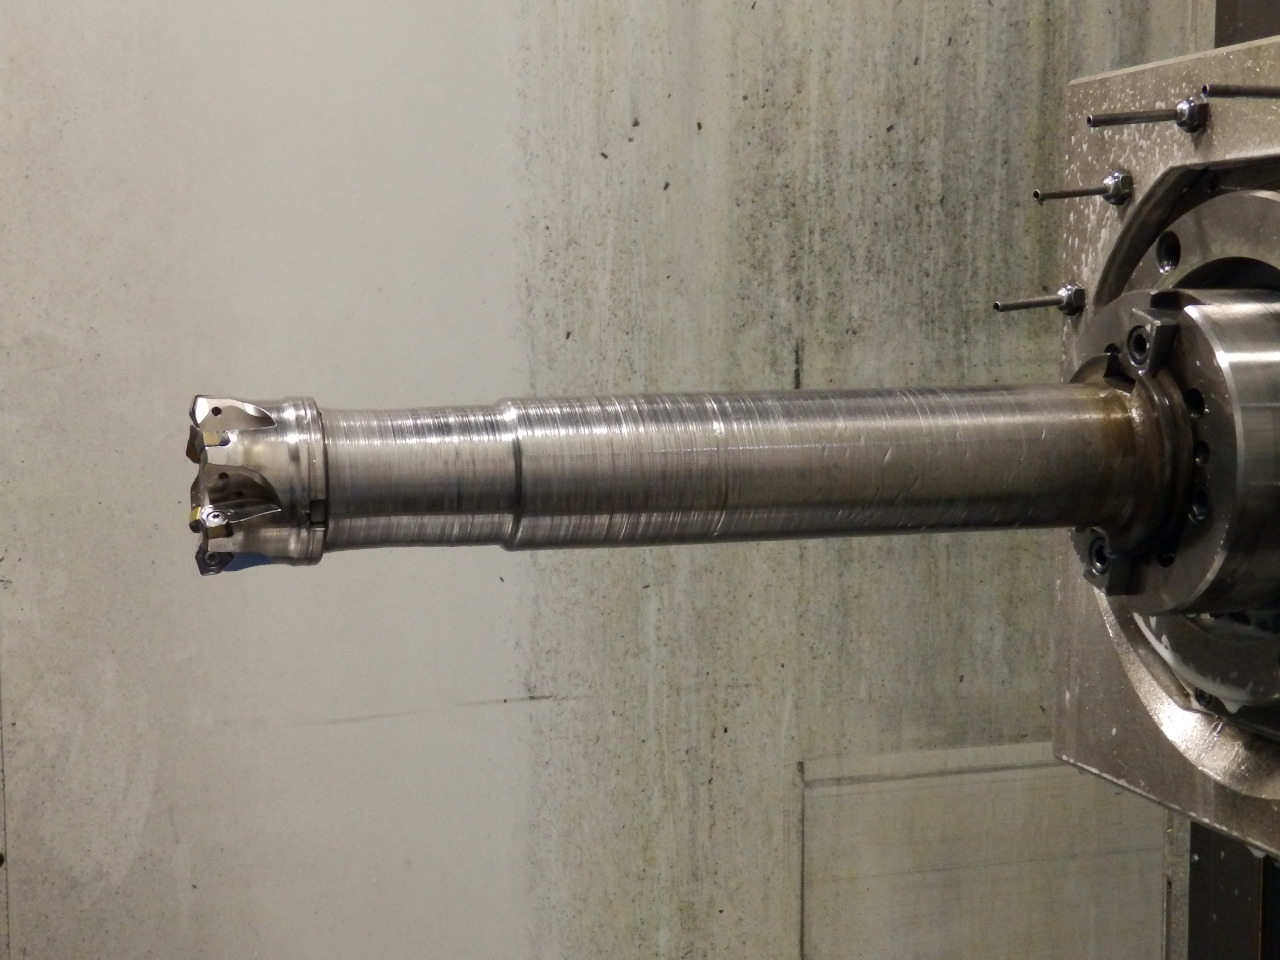 High Feed Milling Large Steel Castings - Seco High Feed Milling Cutter on 16 Inch Long Extension